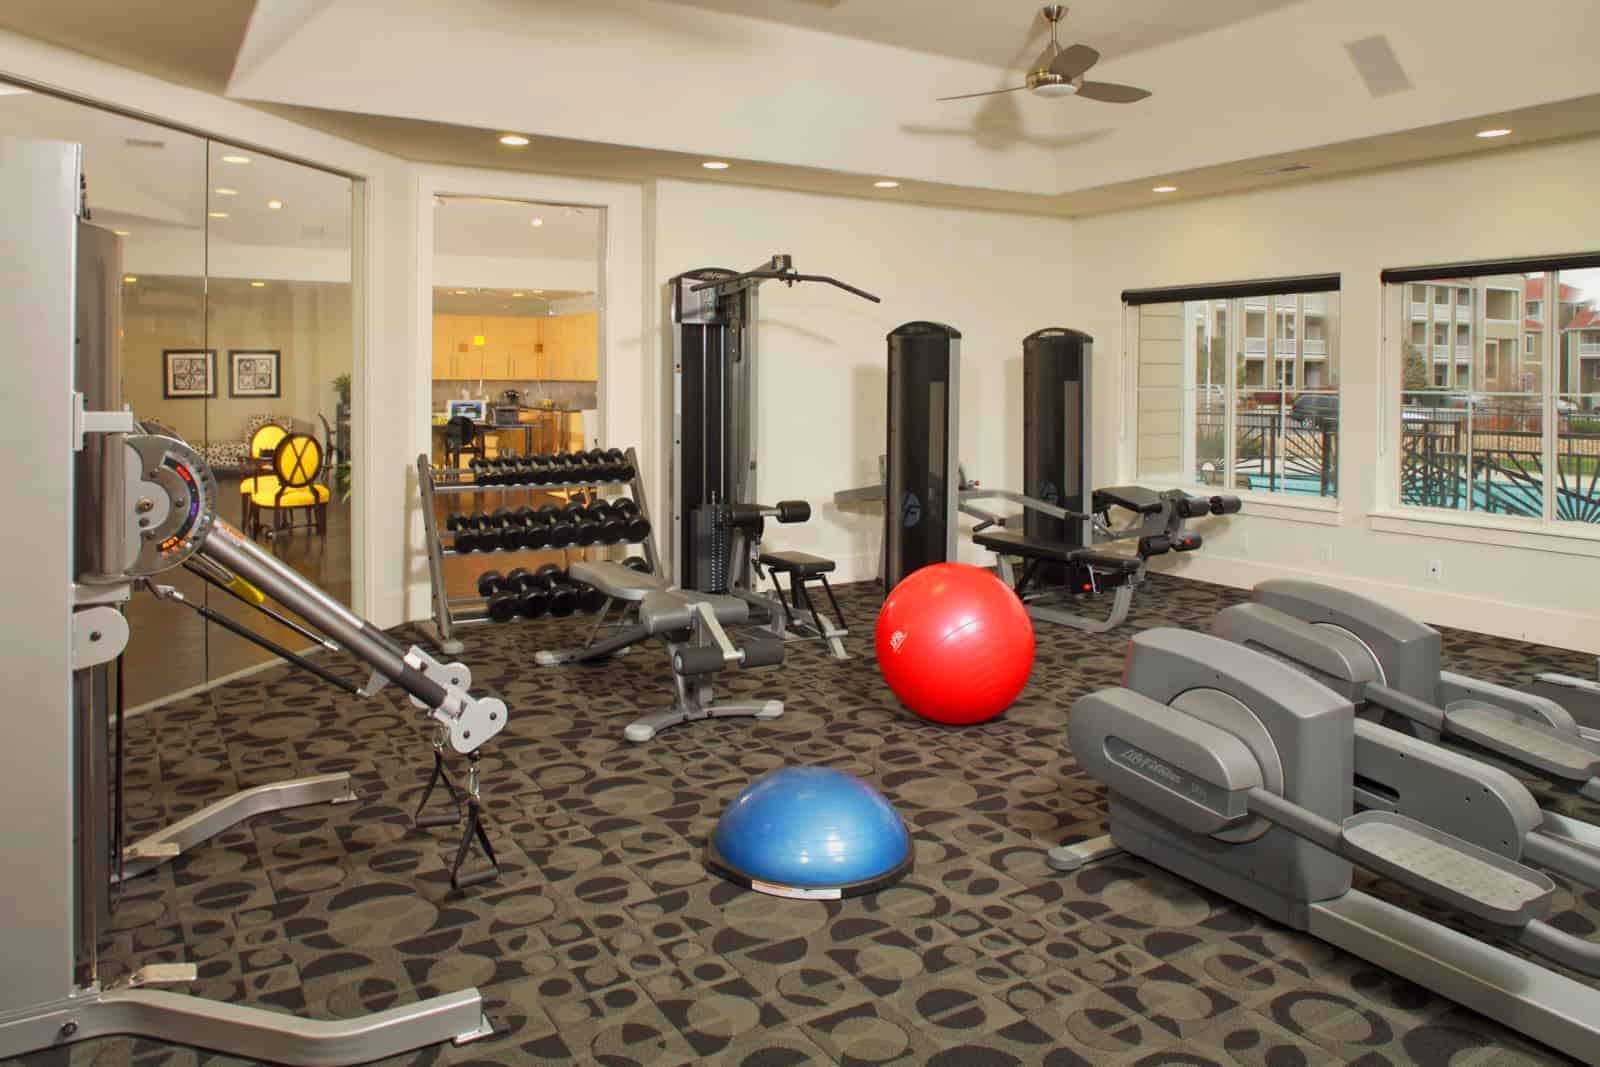 Fitness center with various exercise equipment.